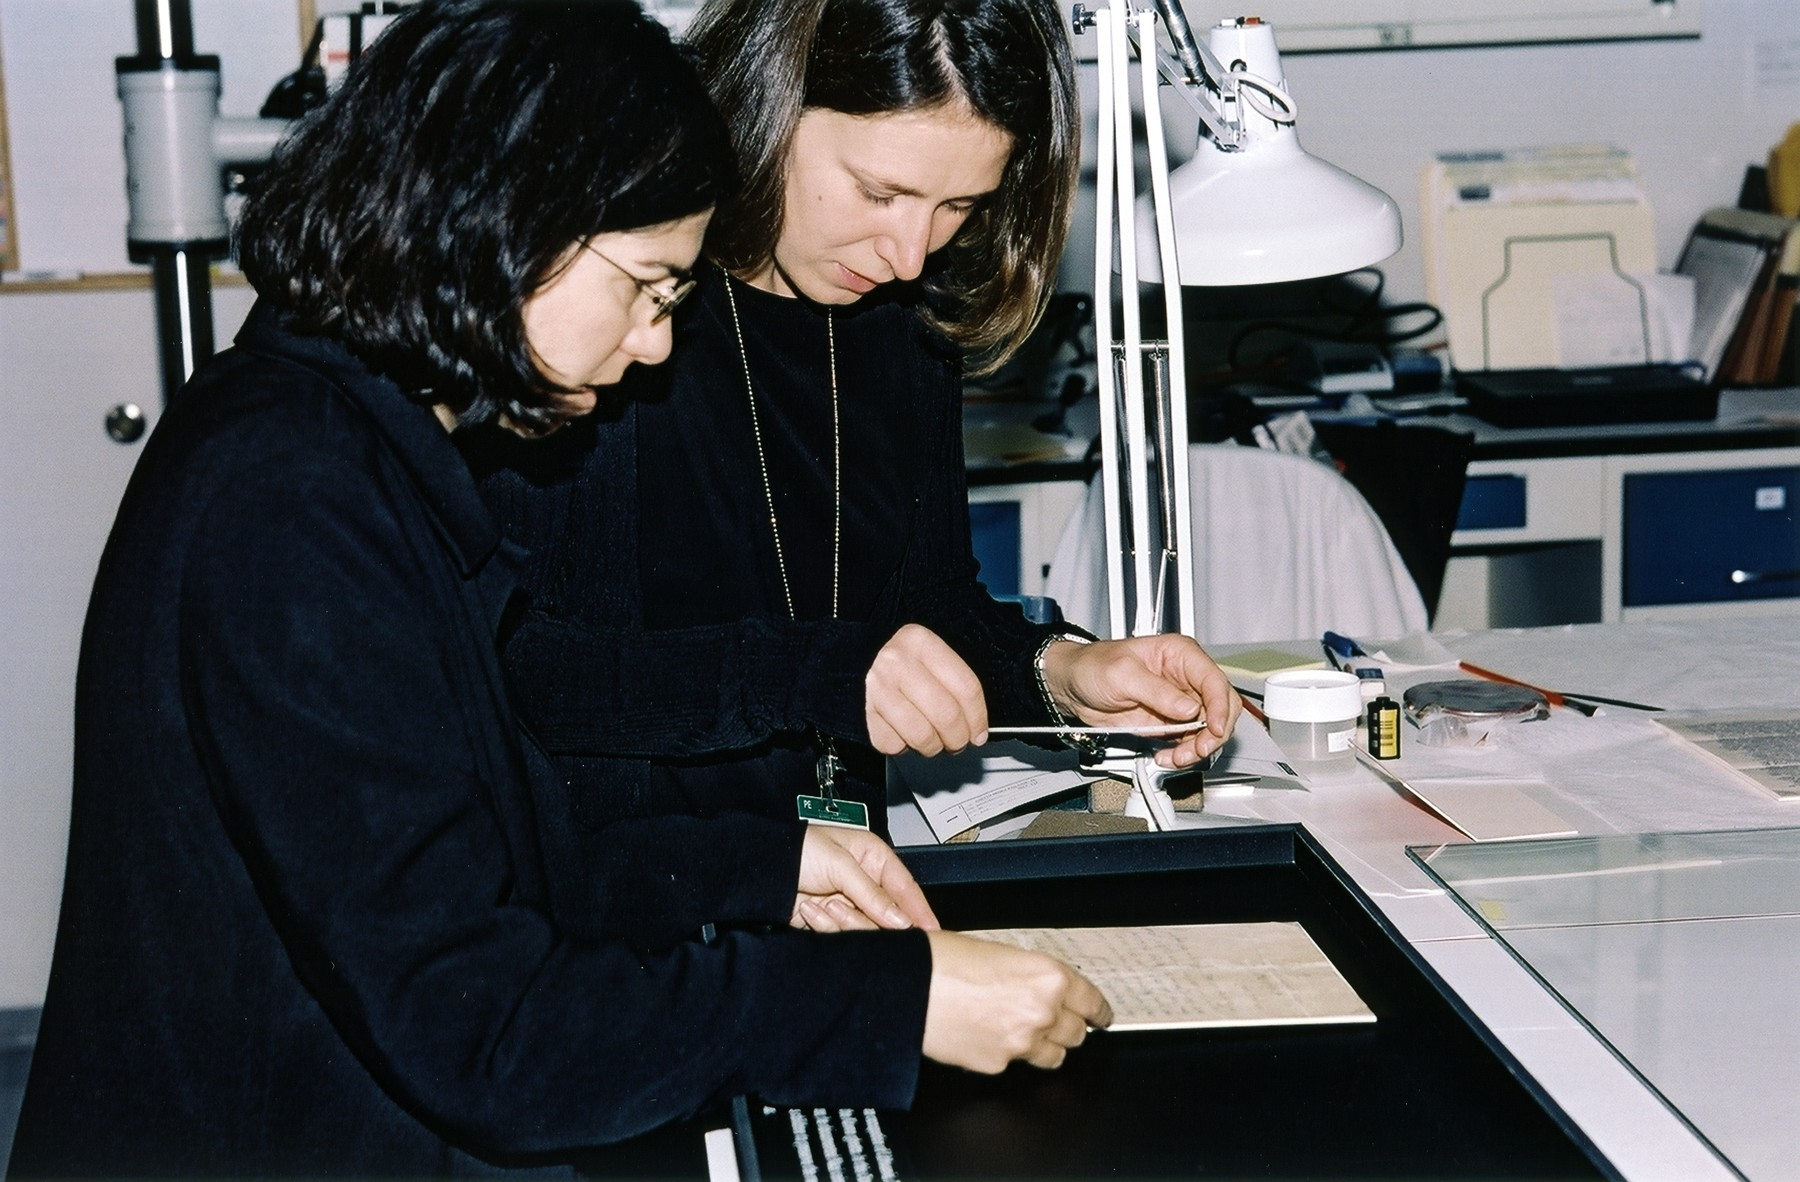 Photo conservator Emily Jacobson and Permanent Exhibition Coordinator Kathleen Mulvaney measure an artifact in the Museum's conservation lab before it is installed in the Permanent Exhibition as part of a regular rotation plan.  The document pictured is the ethical will of Elkhanan Elkes, the chairman of the Kovno ghetto Jewish Council.